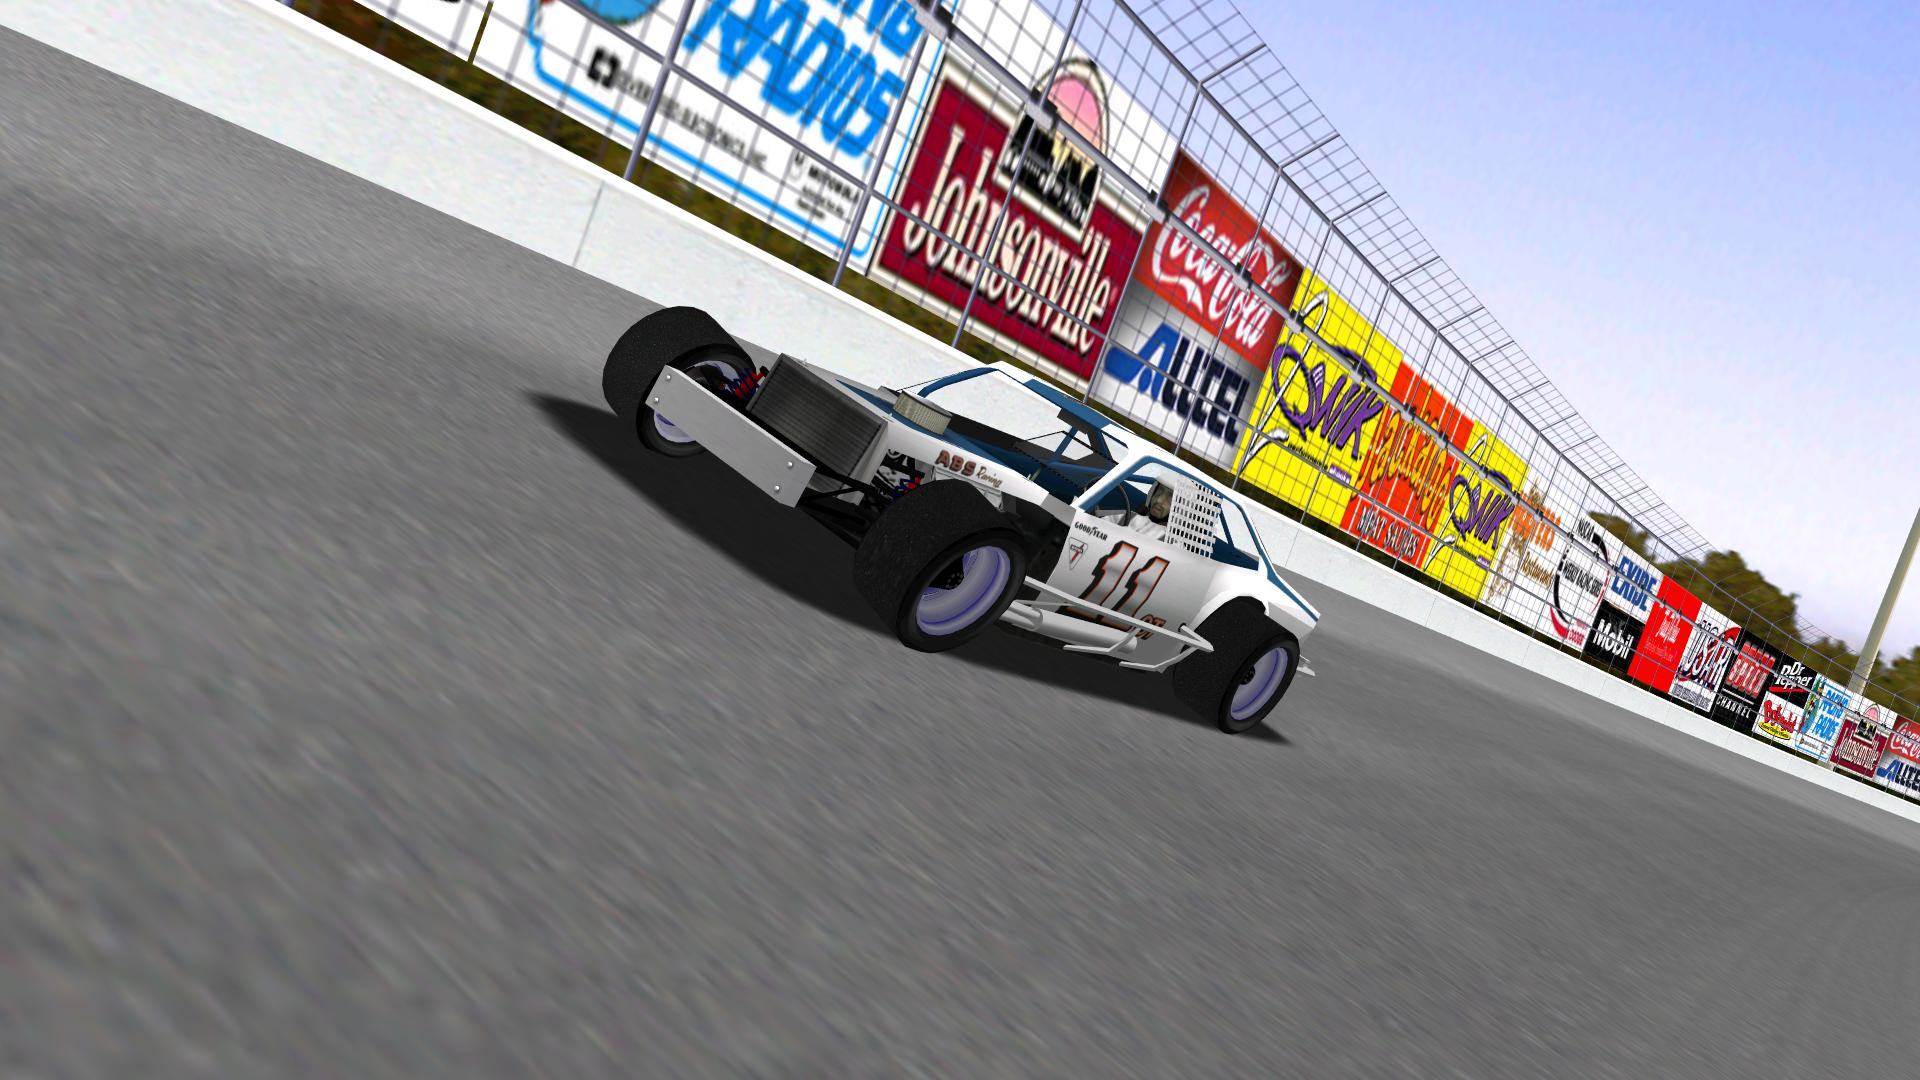 A view of Speedyman11's modified as he dominates at Concord. (NHMA)